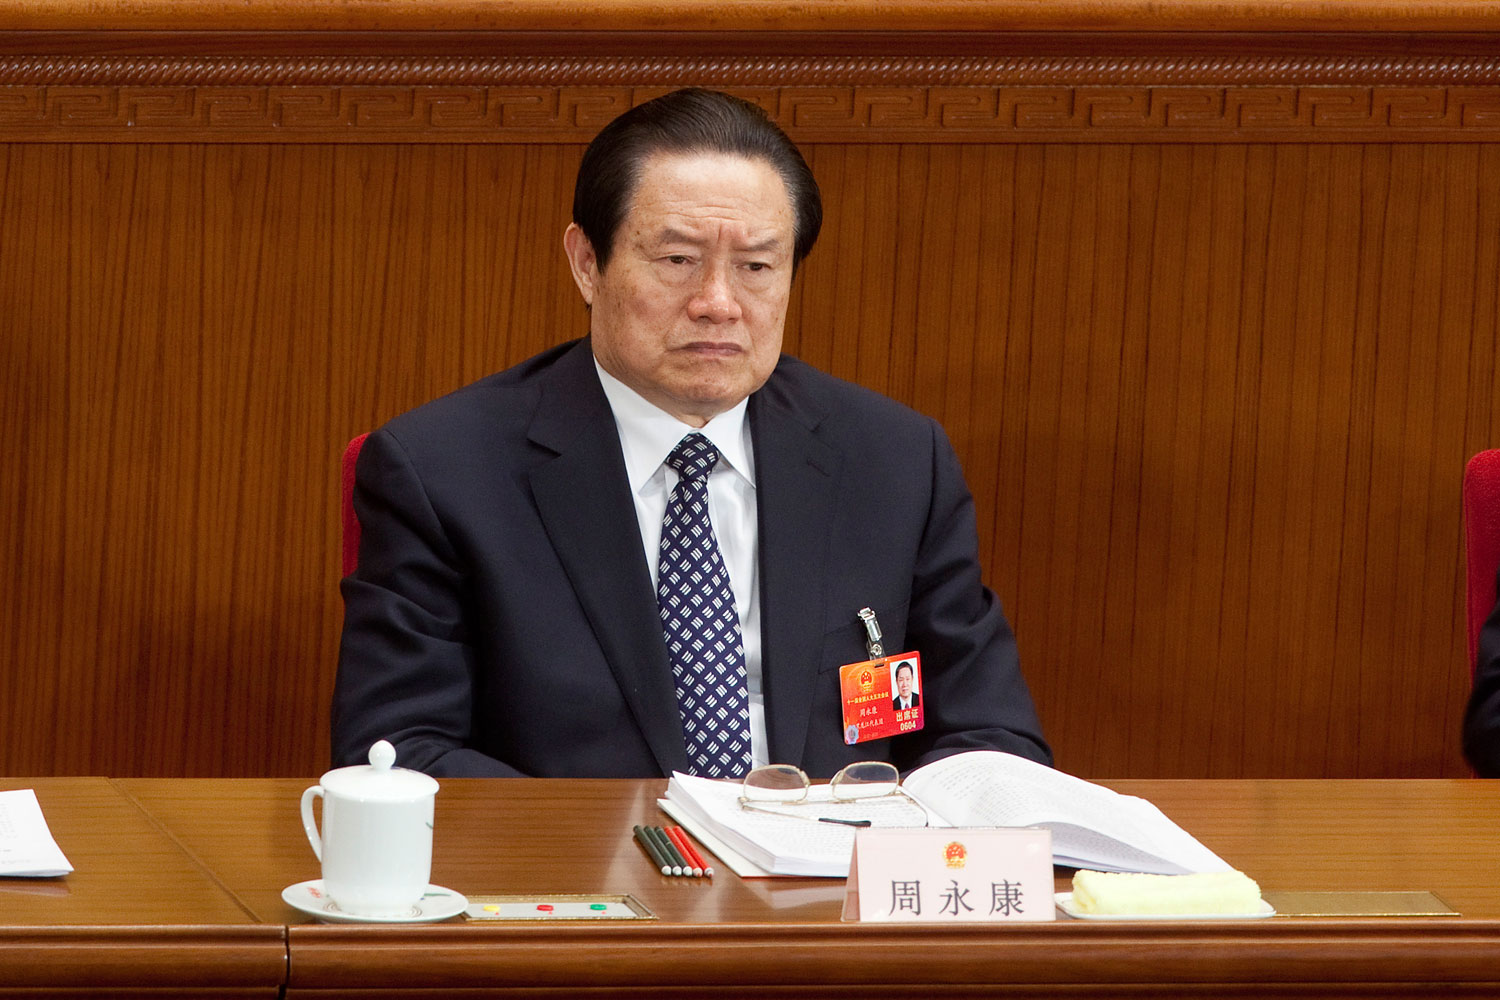 Zhou Yongkang, China's former top security official, attends a plenary session during China's National People's Congress in Beijing, China, on Mar. 8, 2012